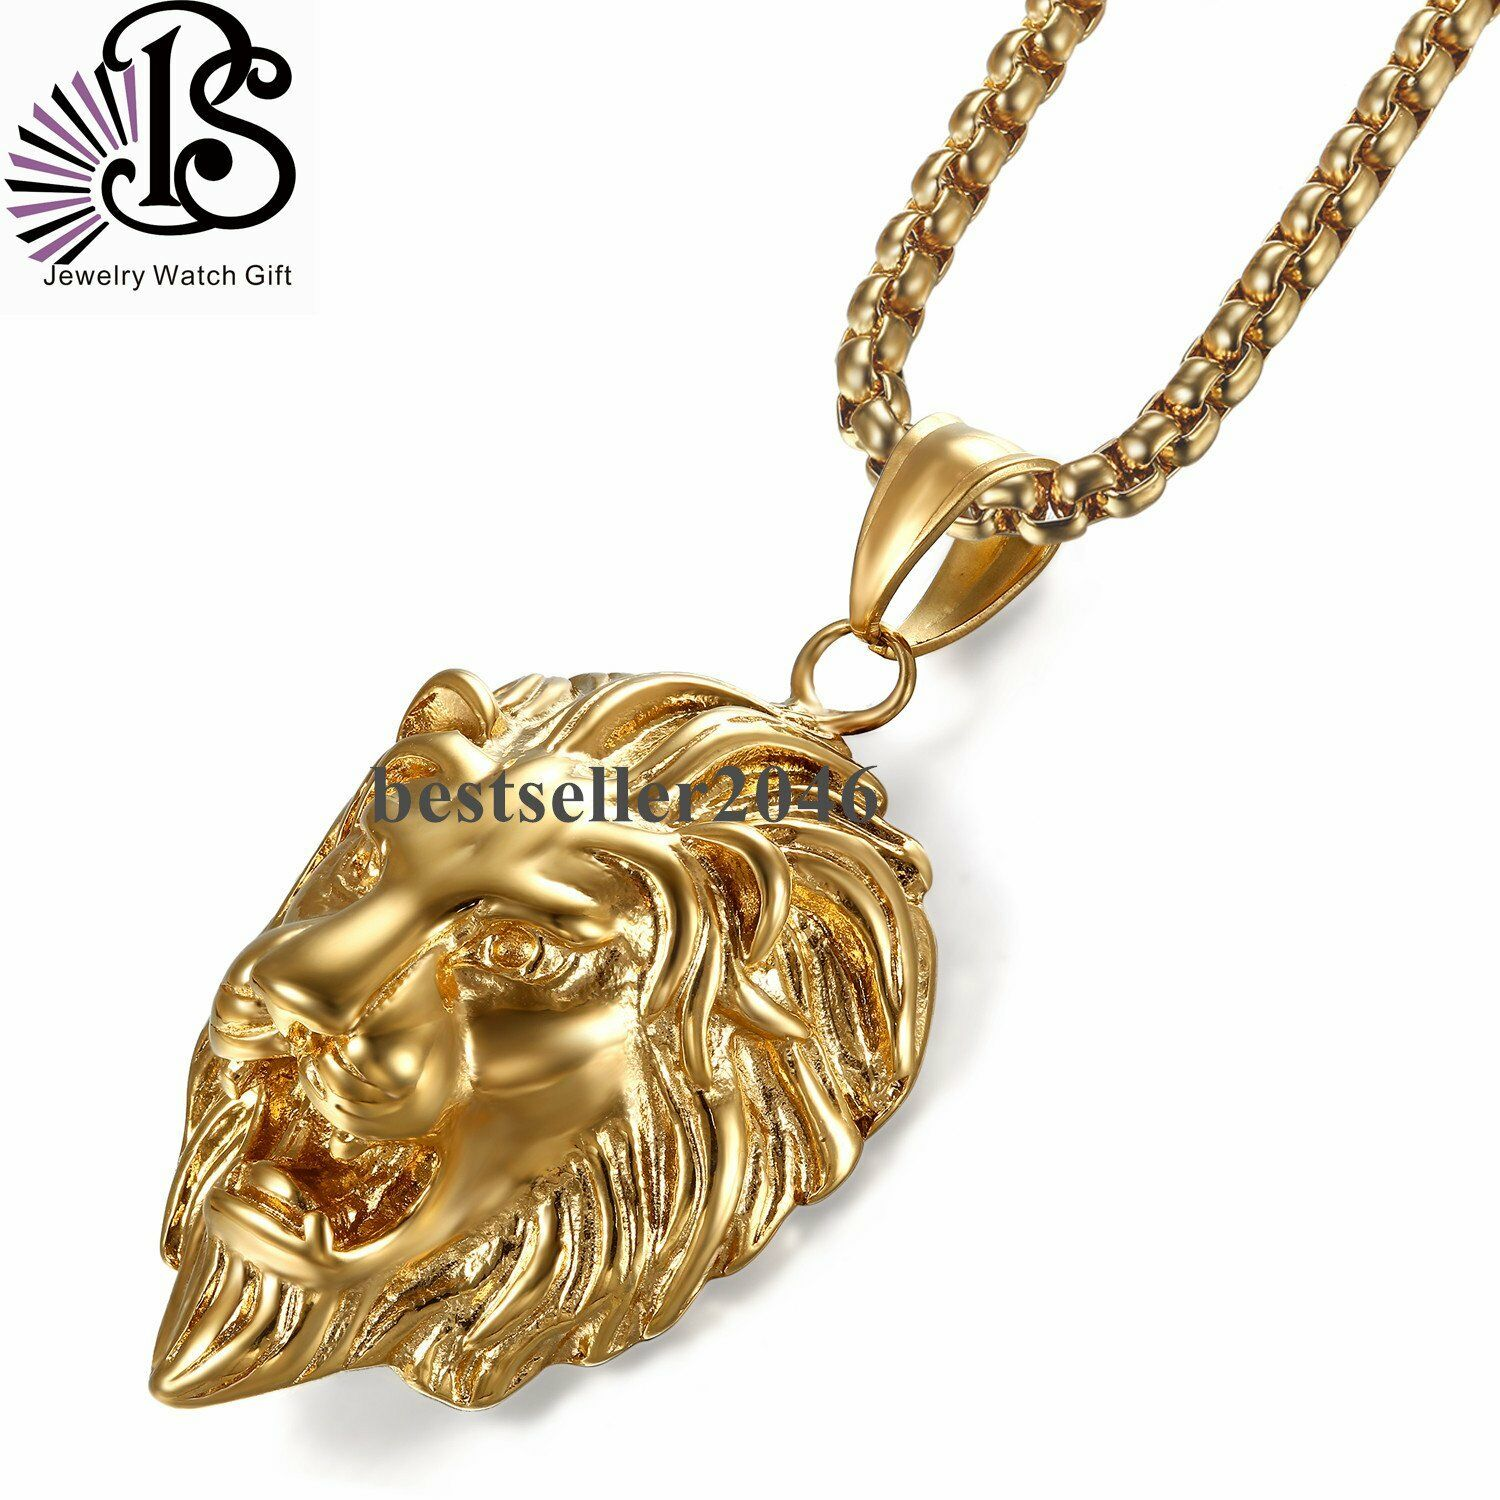 s jewelry necklaces pendant id zodiac leo sale lion vtglukerazzagoldzodiaclionheadpendantstatementnecklace c statement v necklace at gold luca head for large master razza